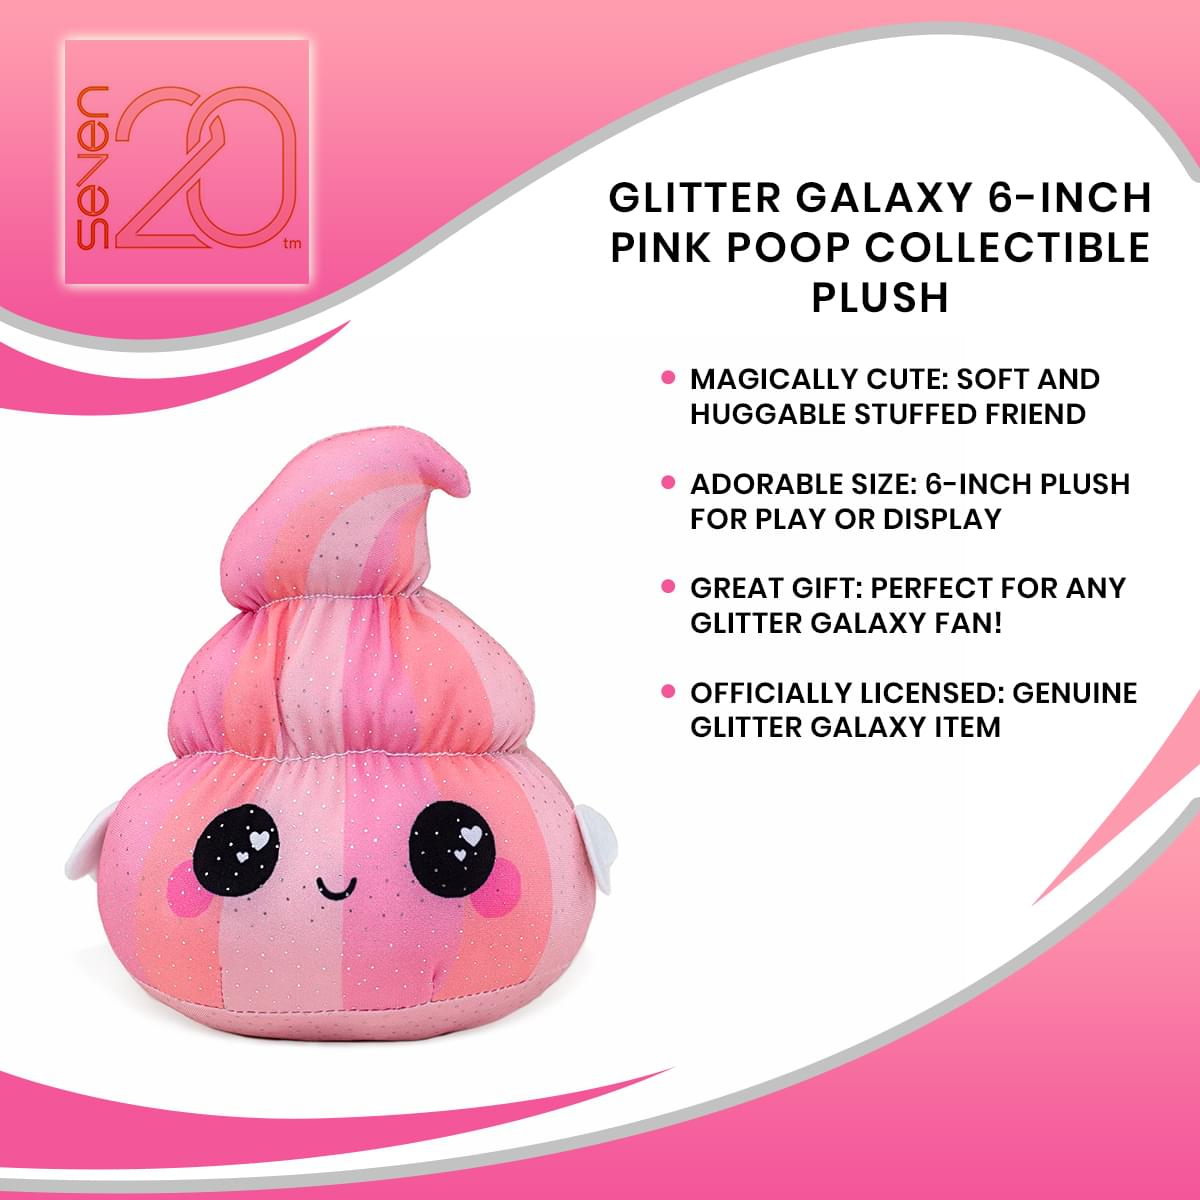 Glitter Galaxy 6-Inch Pink Poop Collectible Plush